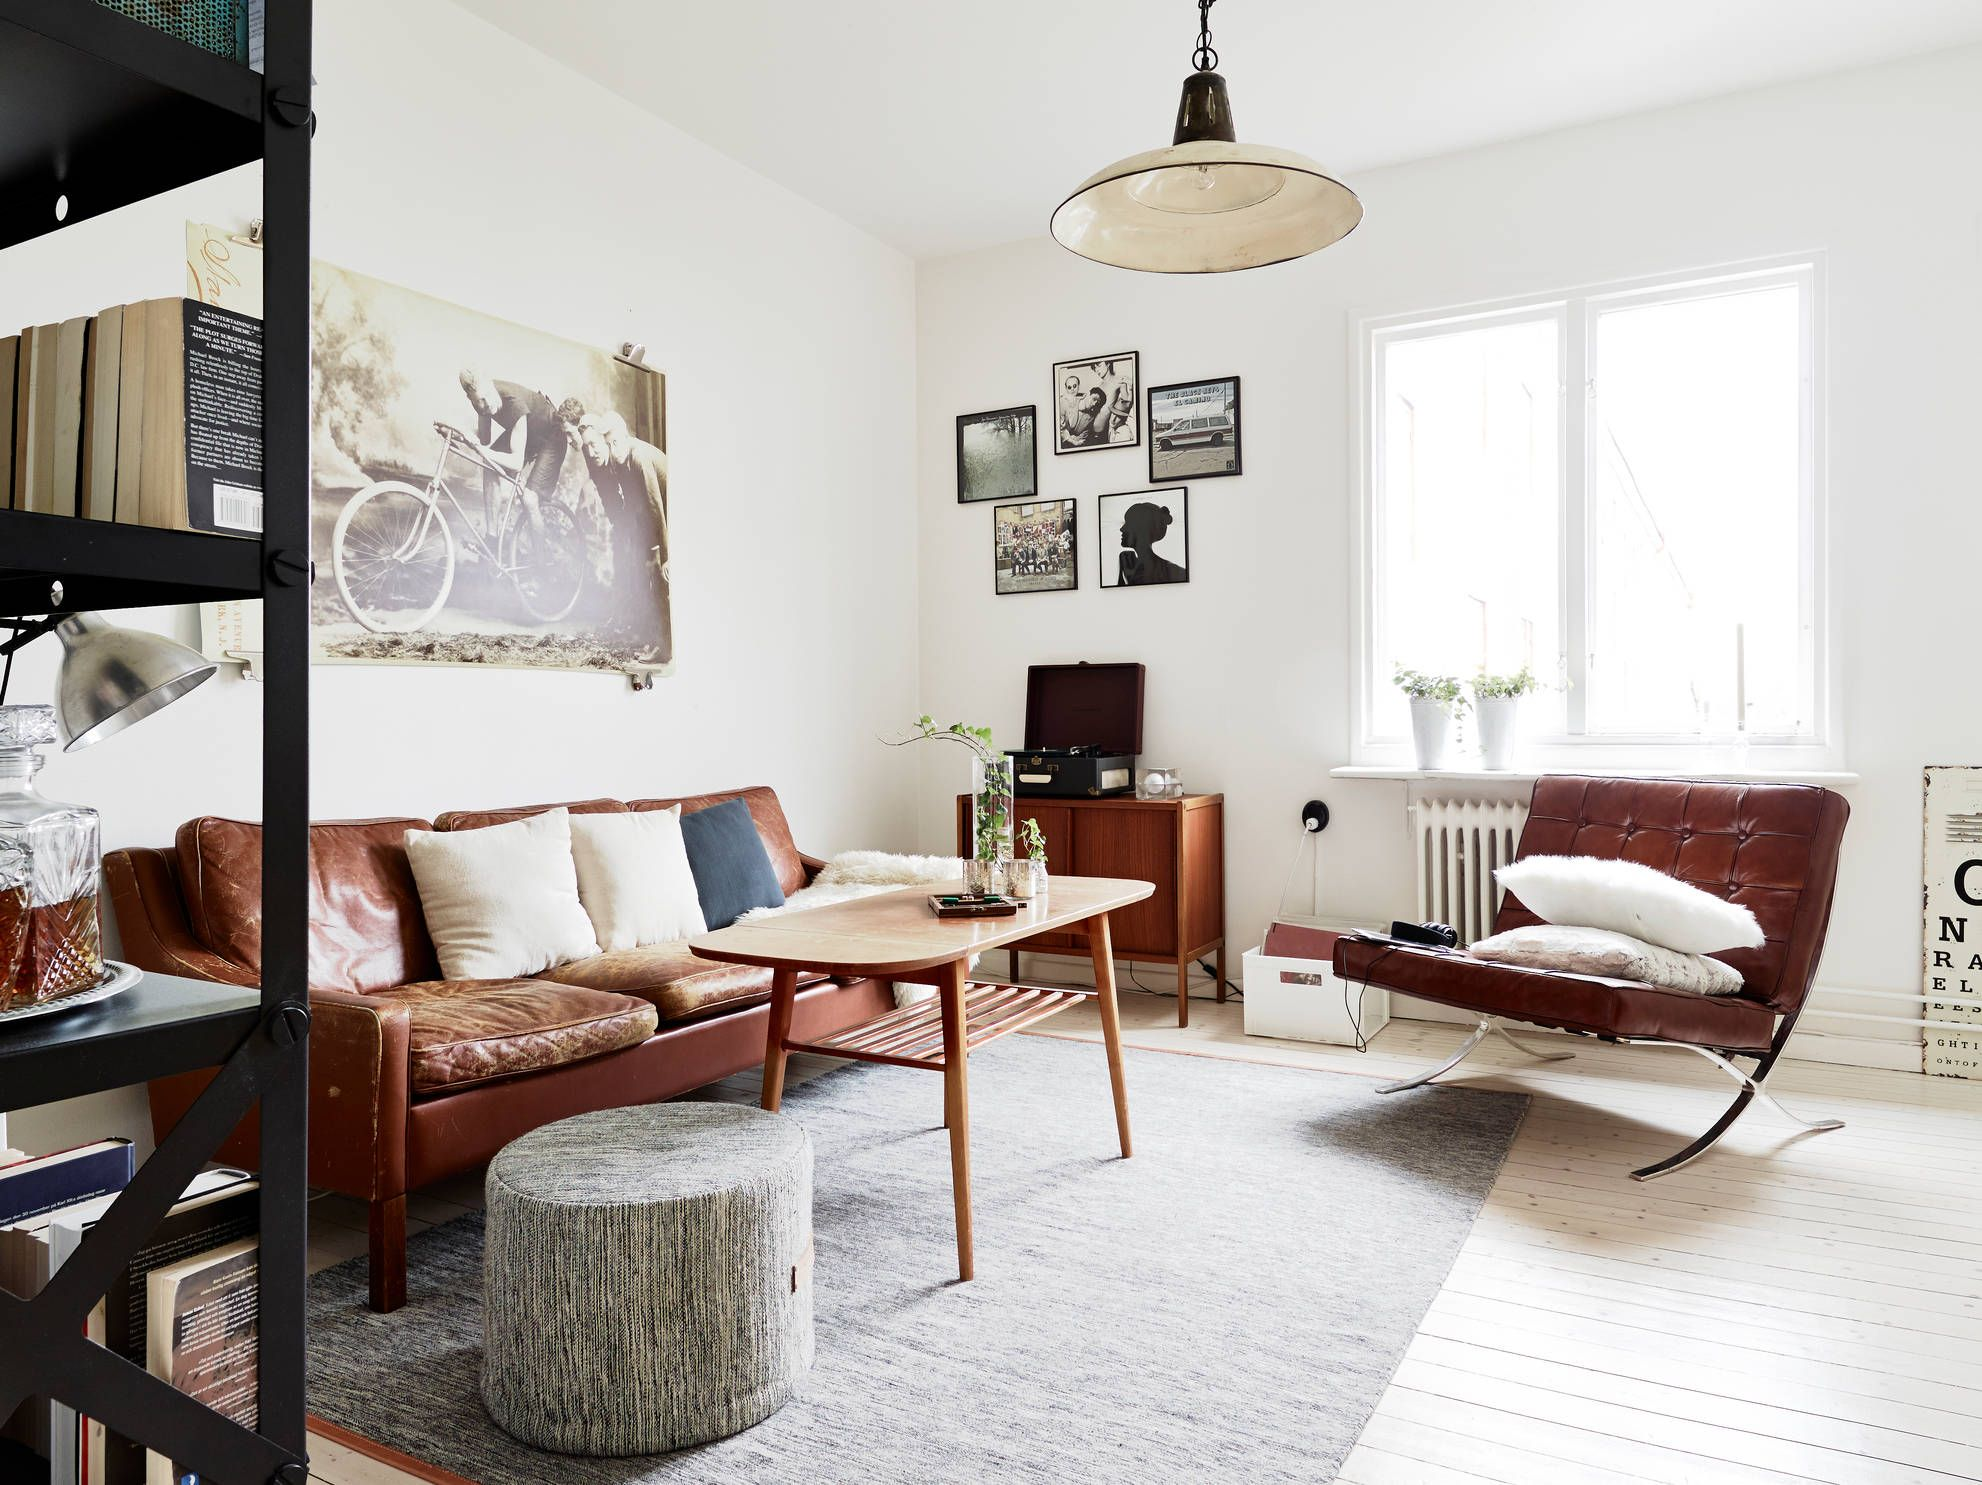 Beautiful home with vintage furniture (COCO LAPINE DESIGN) | Vintage ...